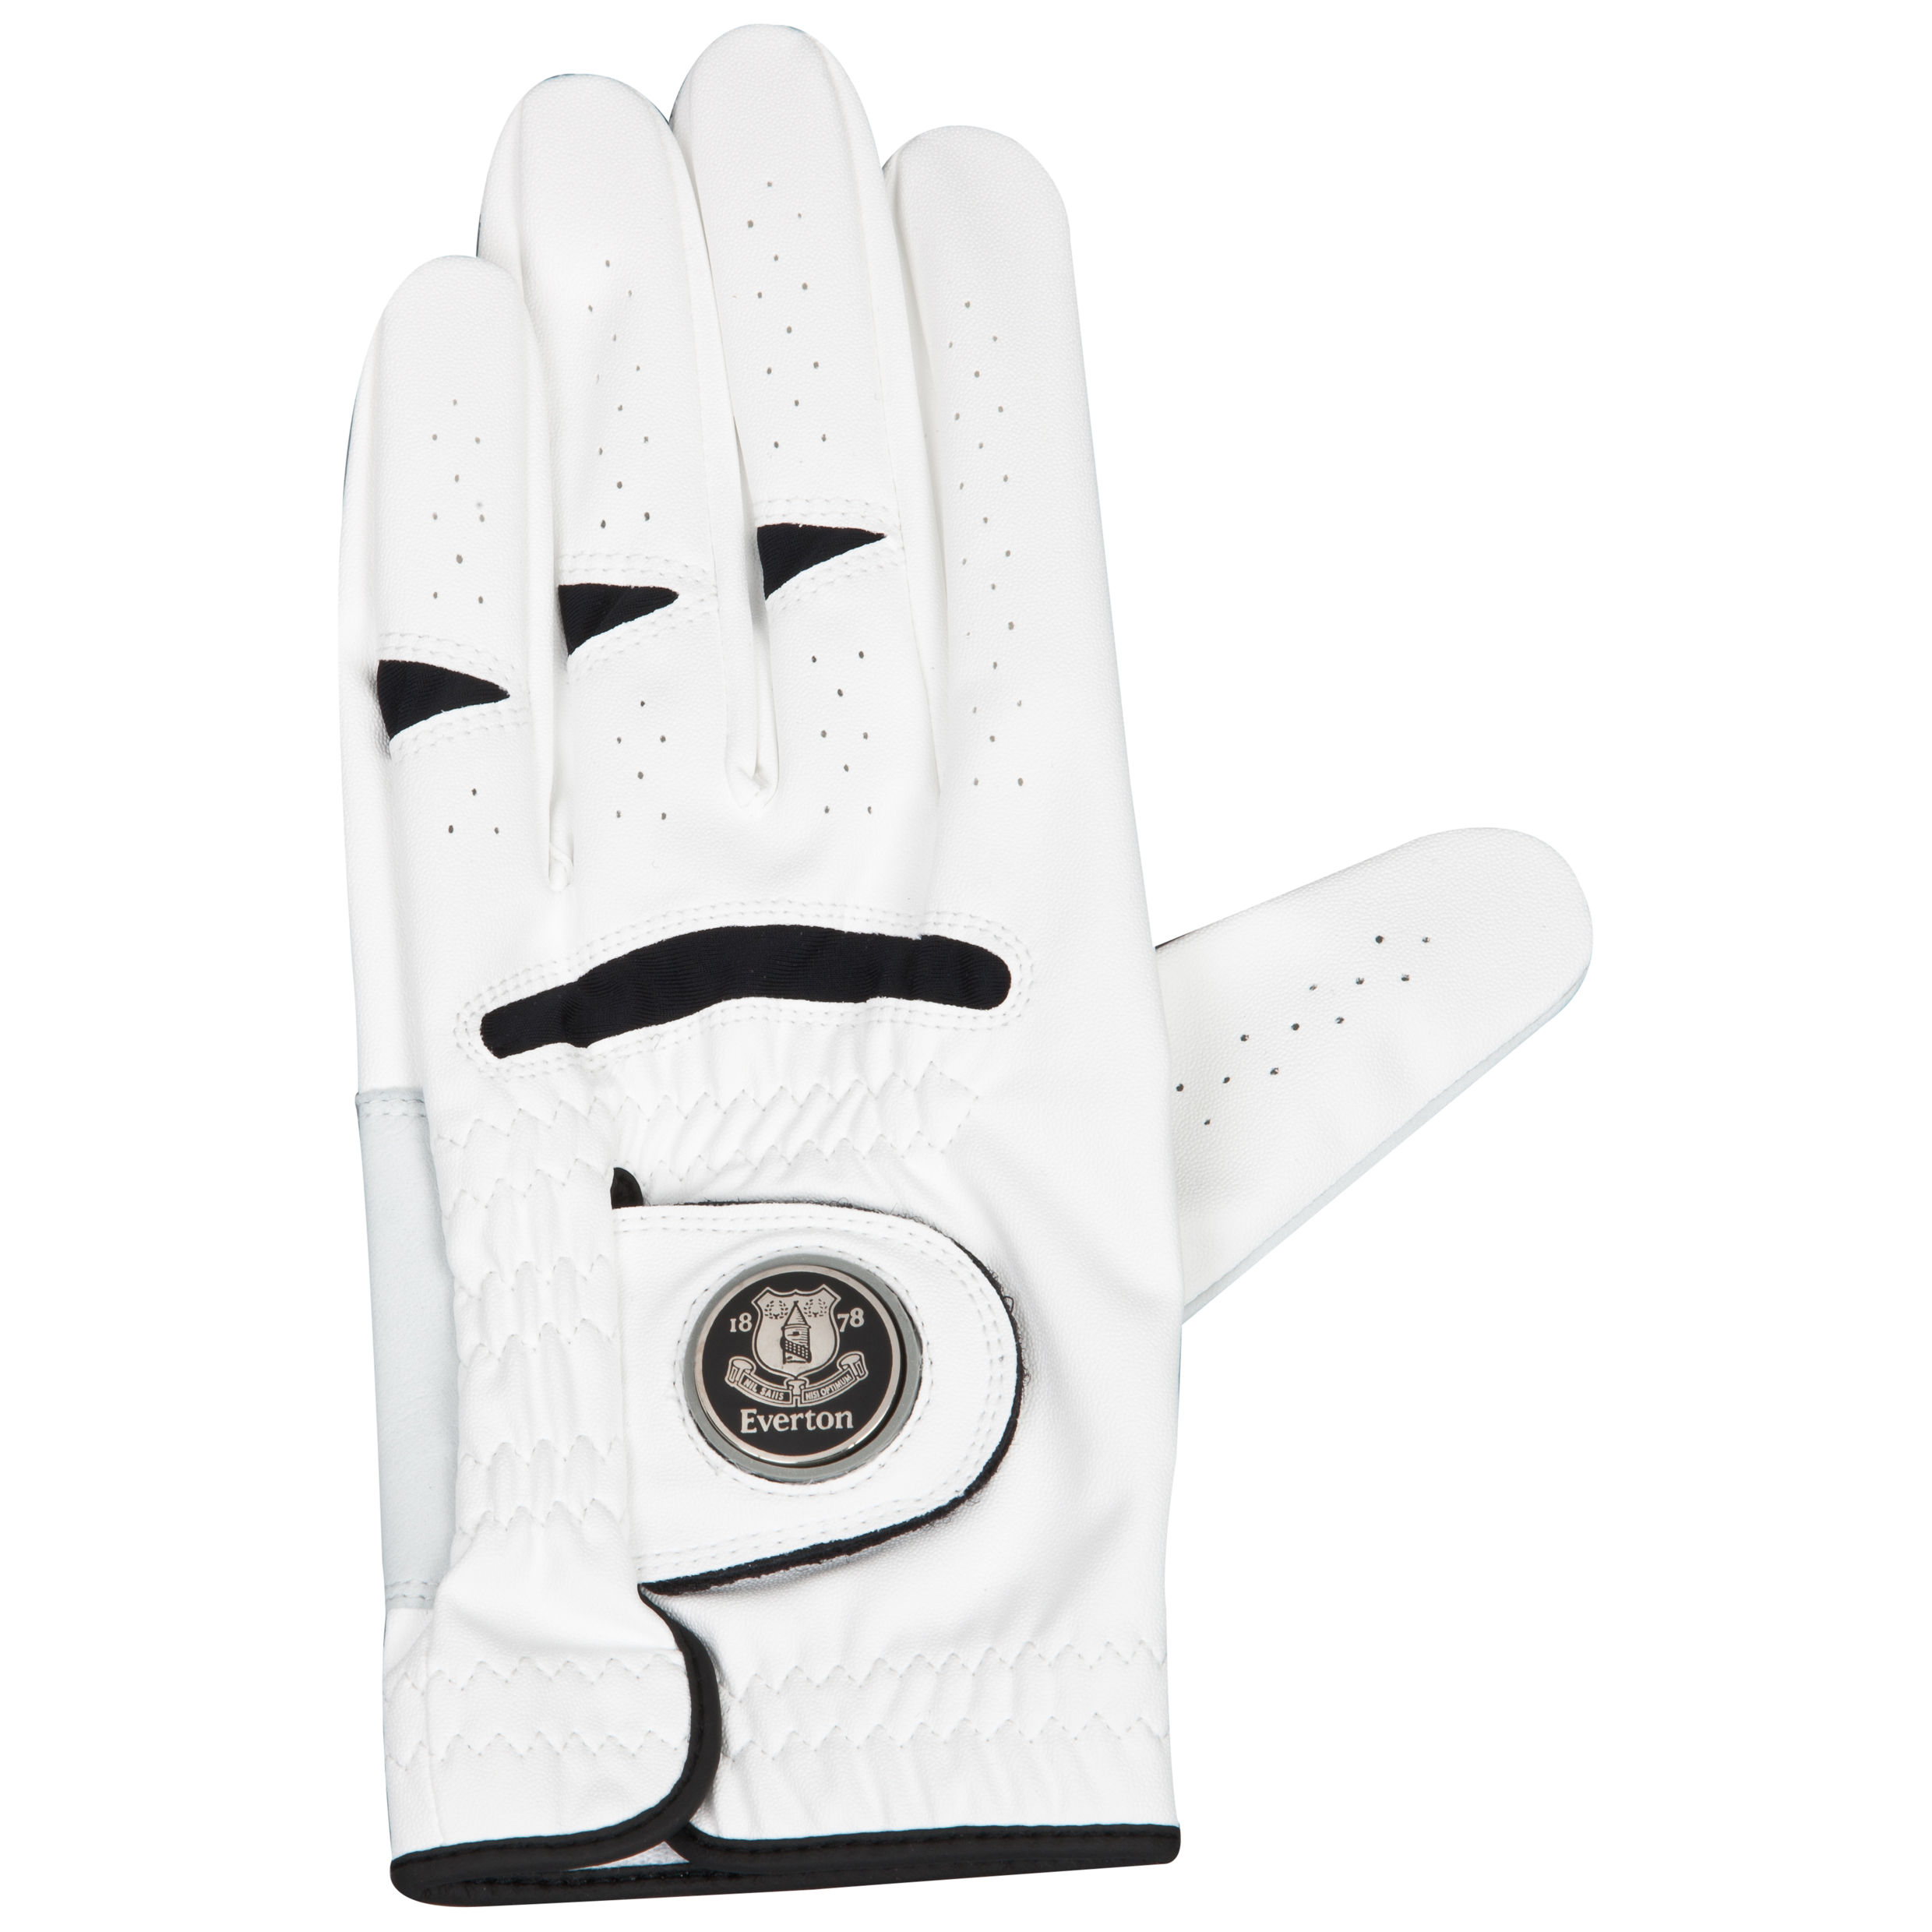 Everton Executive Golf Glove